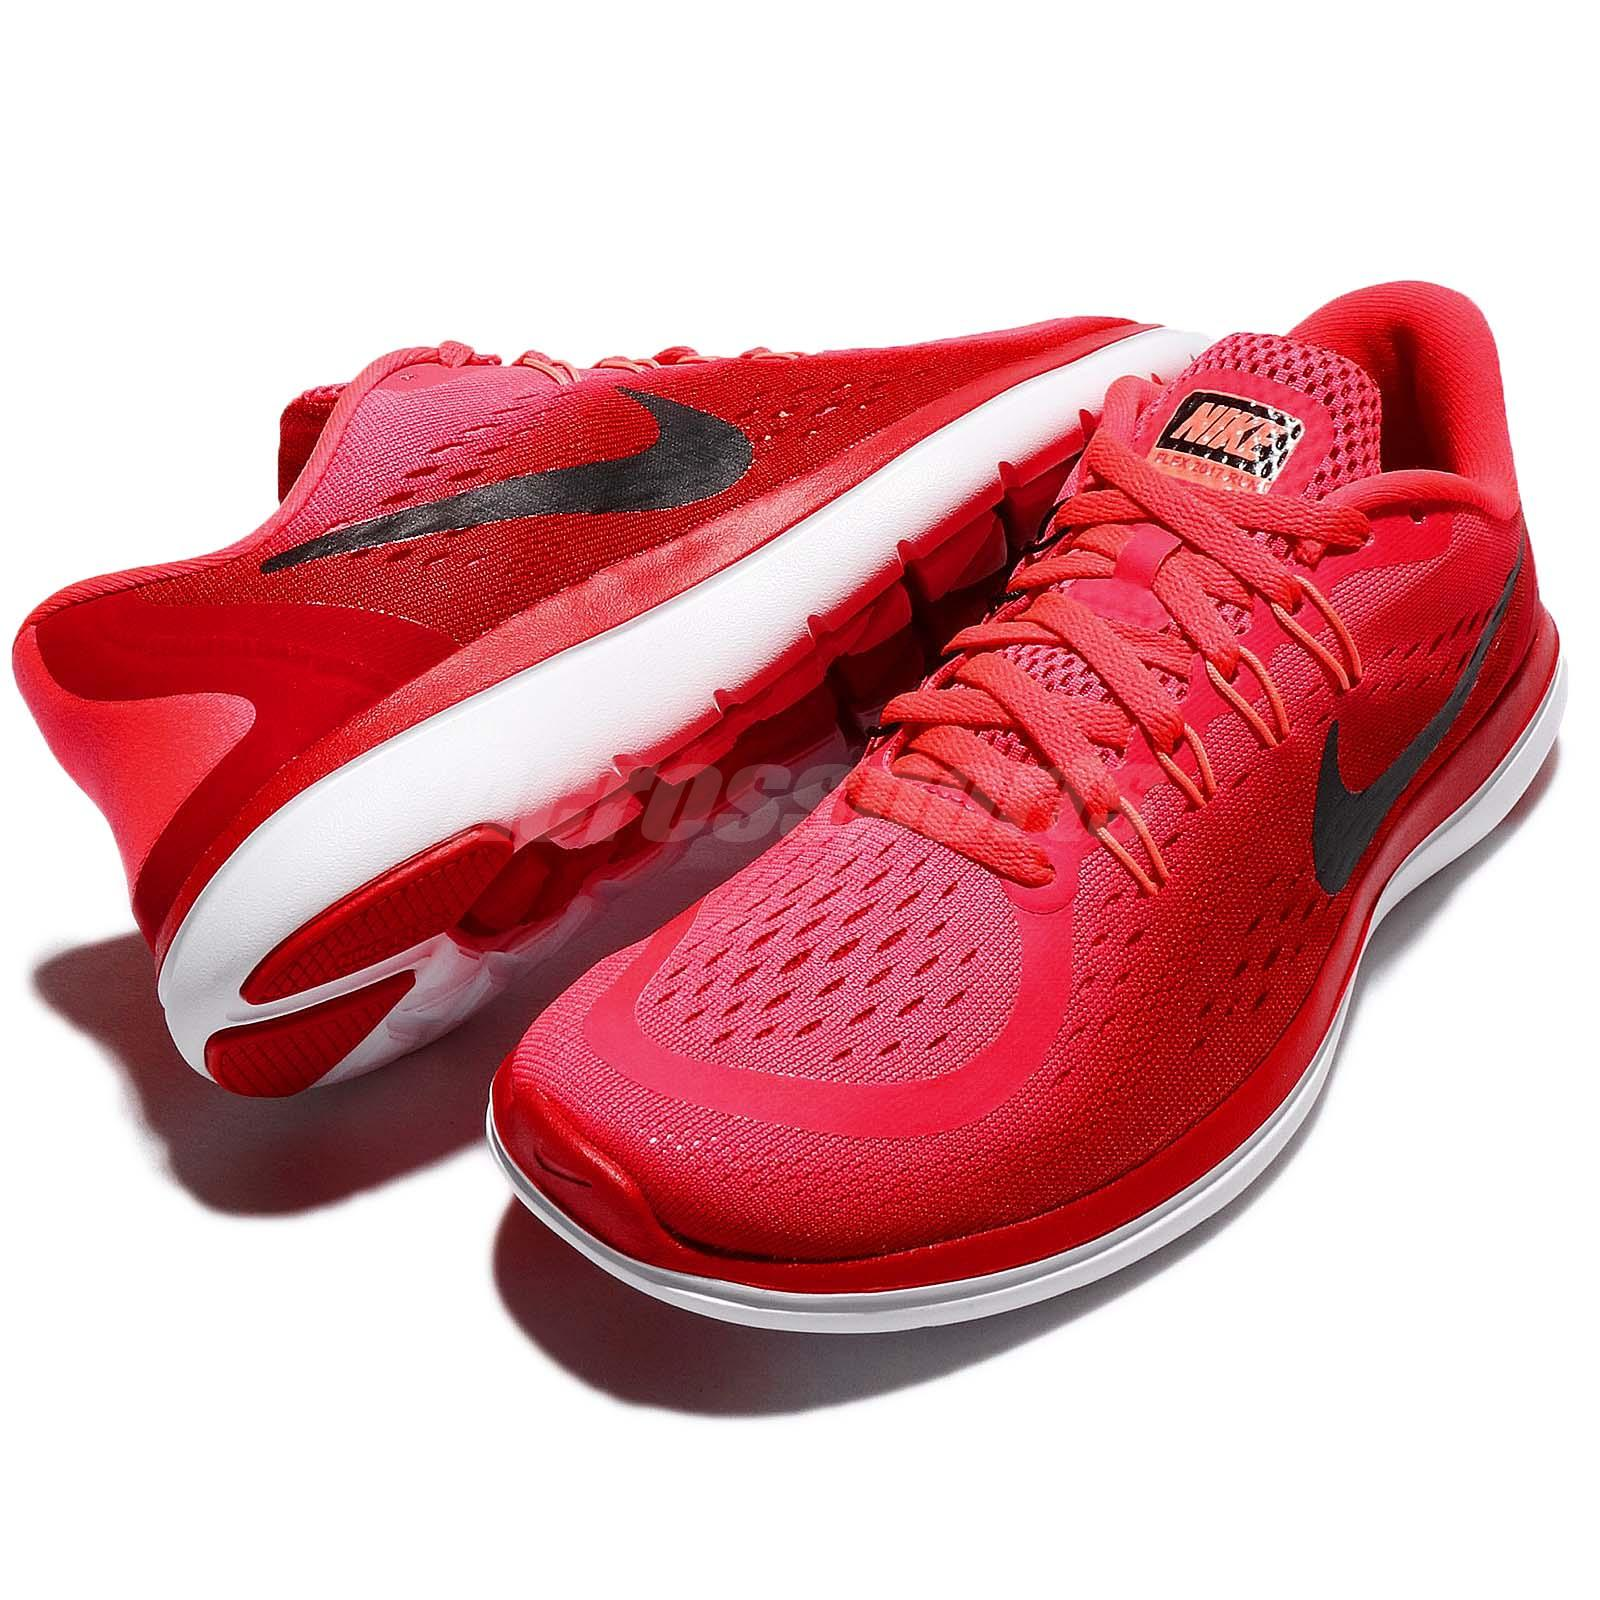 6dcf4d94a820b Wmns Nike Flex 2017 RN Run Solar Red Black Women Running Shoe ...